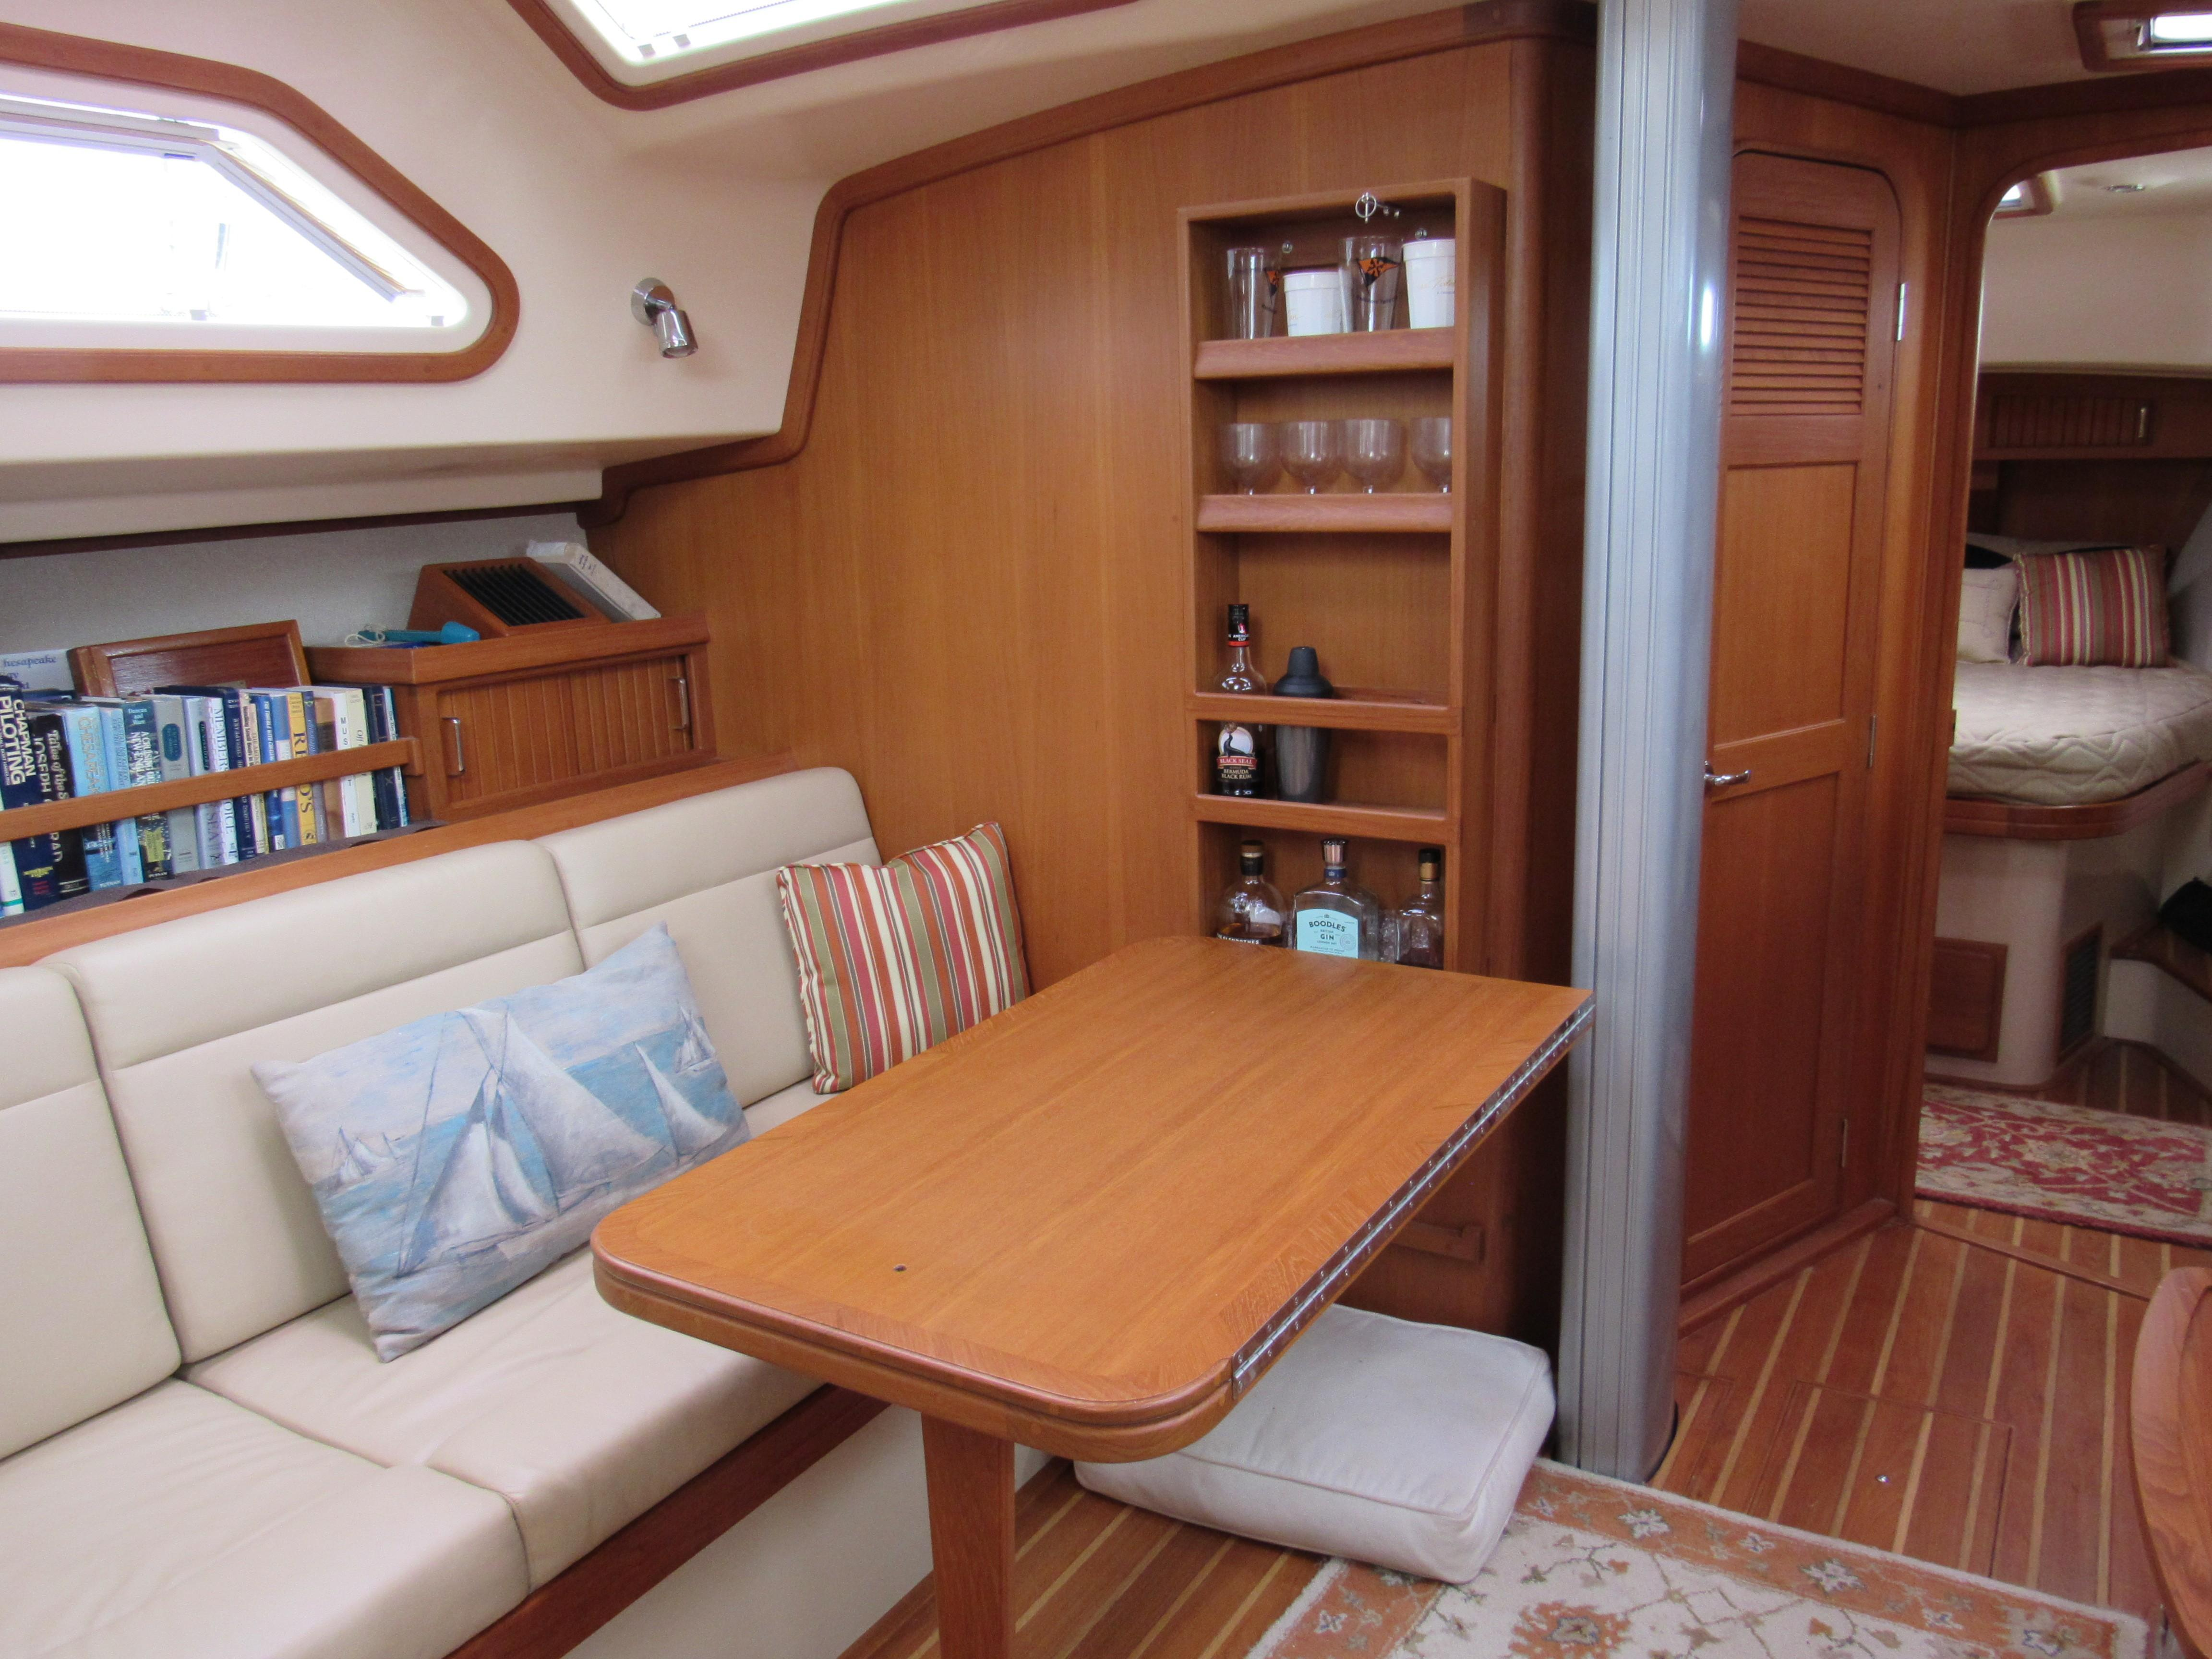 Partially deployed dinette